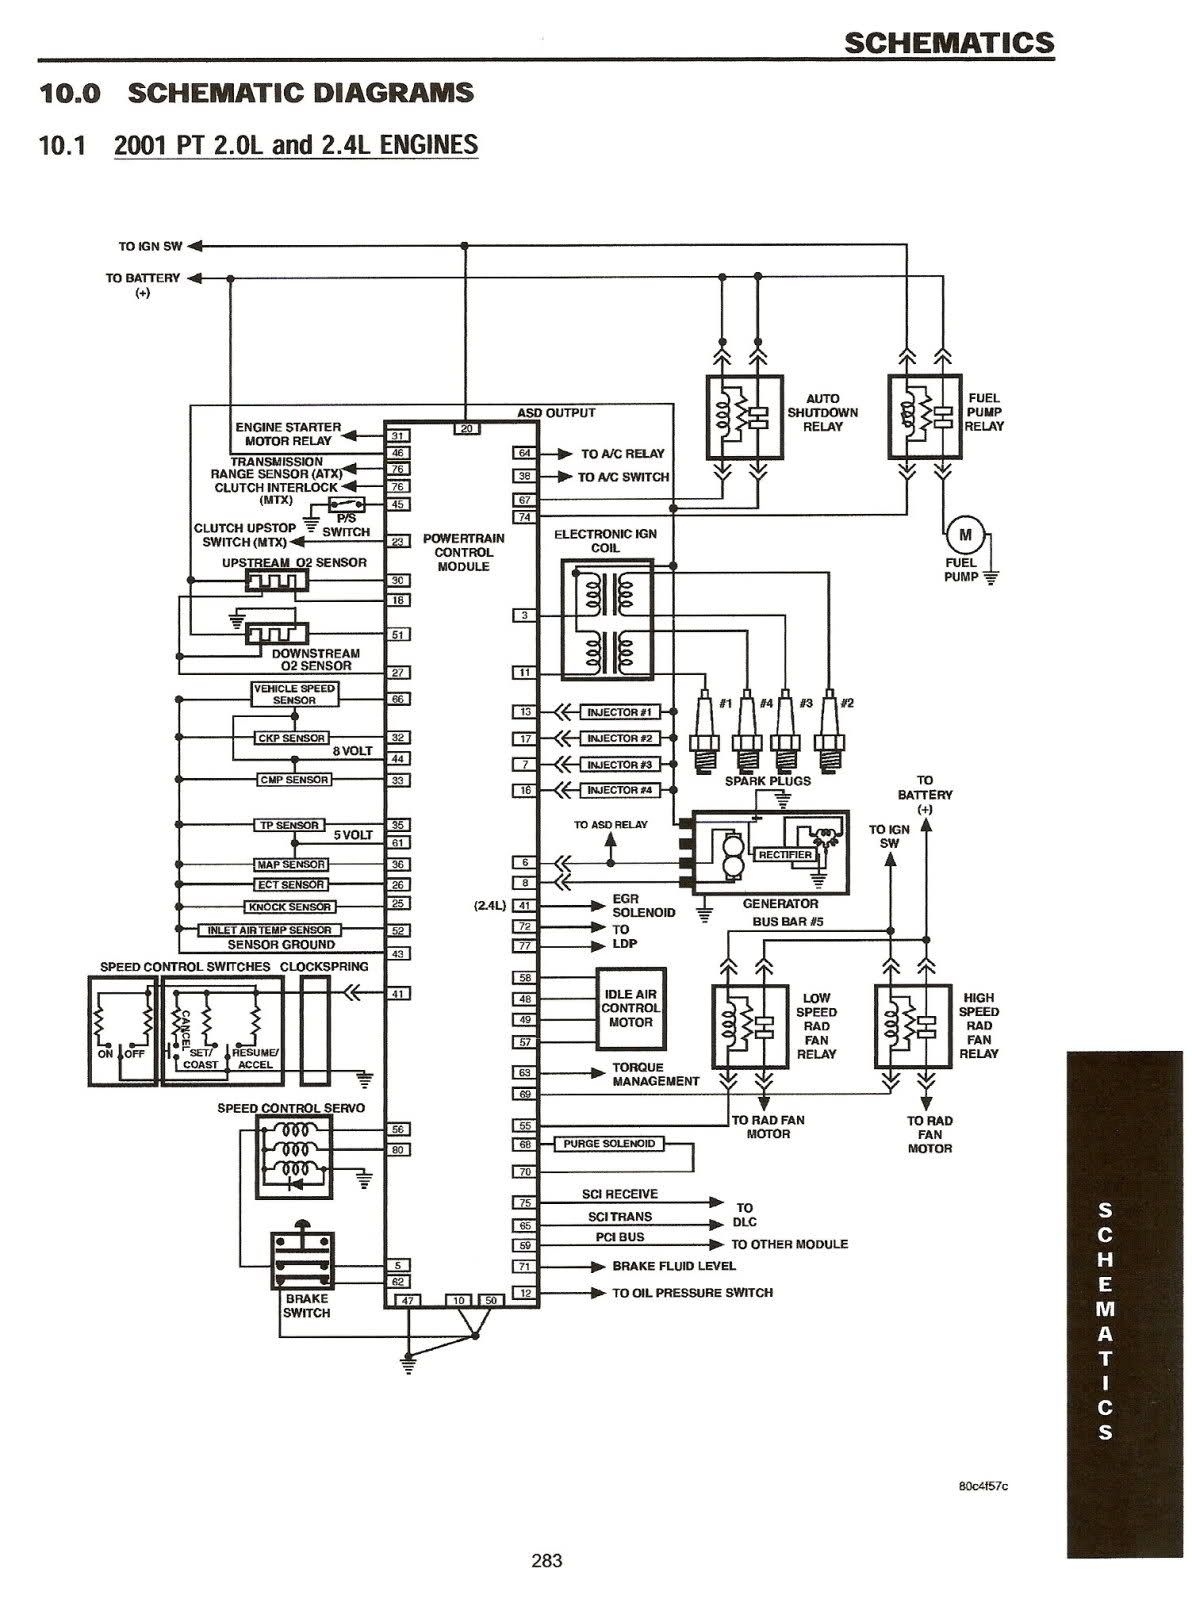 pt cruiser ac wiring diagram pt cruiser ac wiring diagram 2001 pt cruiser wiring diagram | free wiring diagram #2